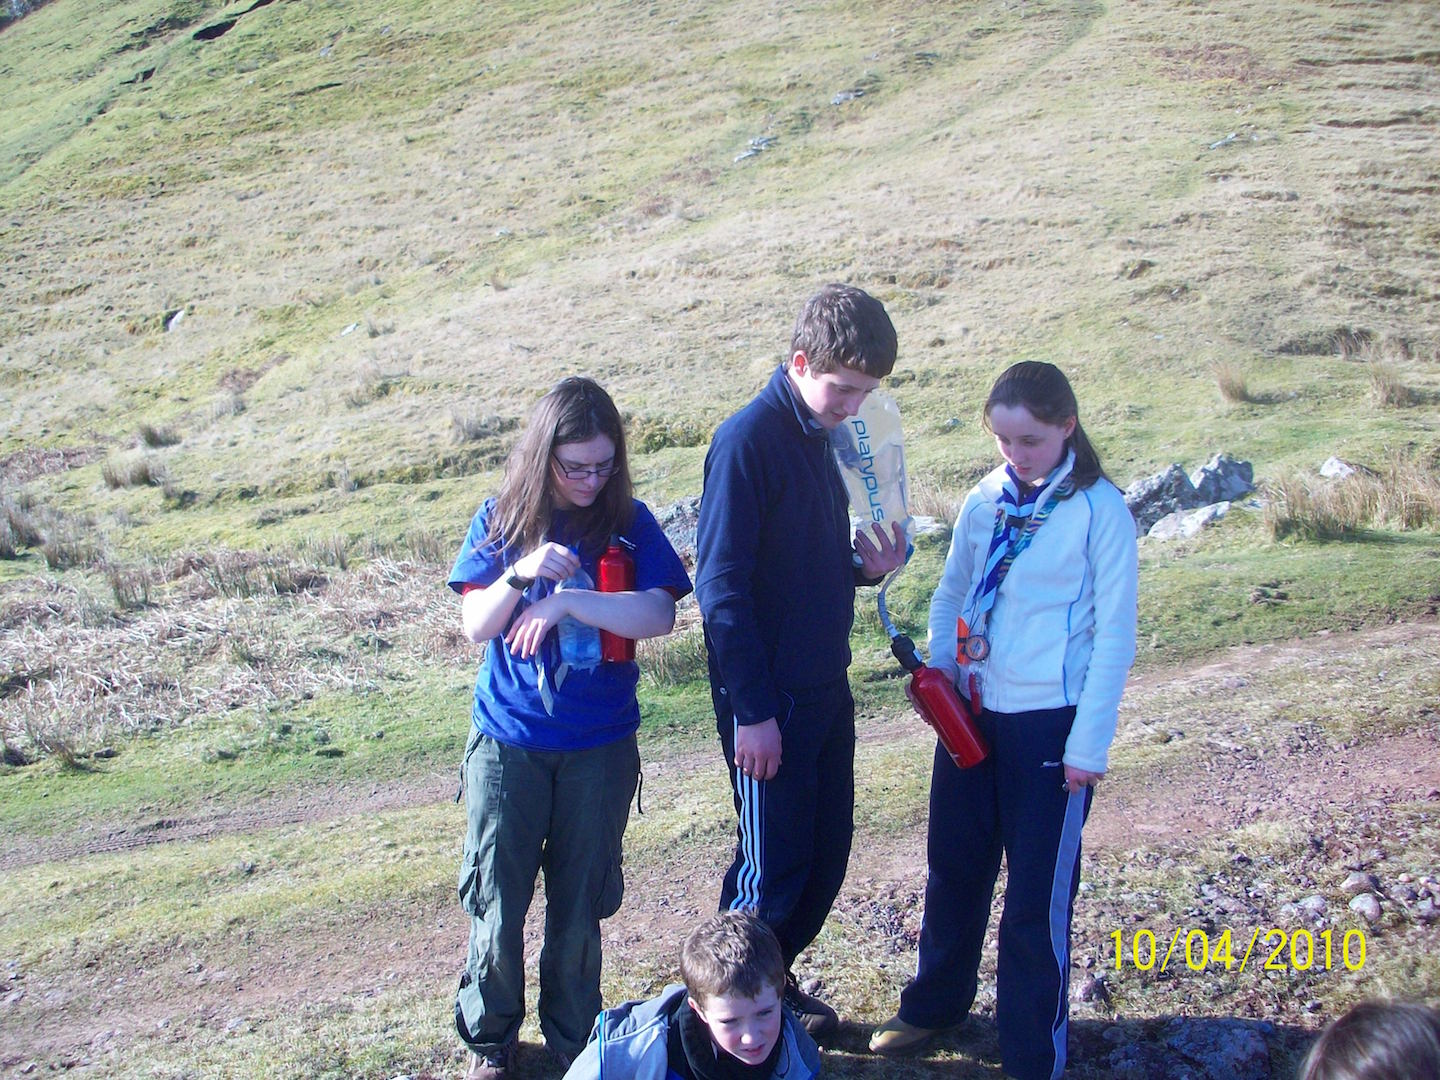 scouts on the pocan april 2010 014